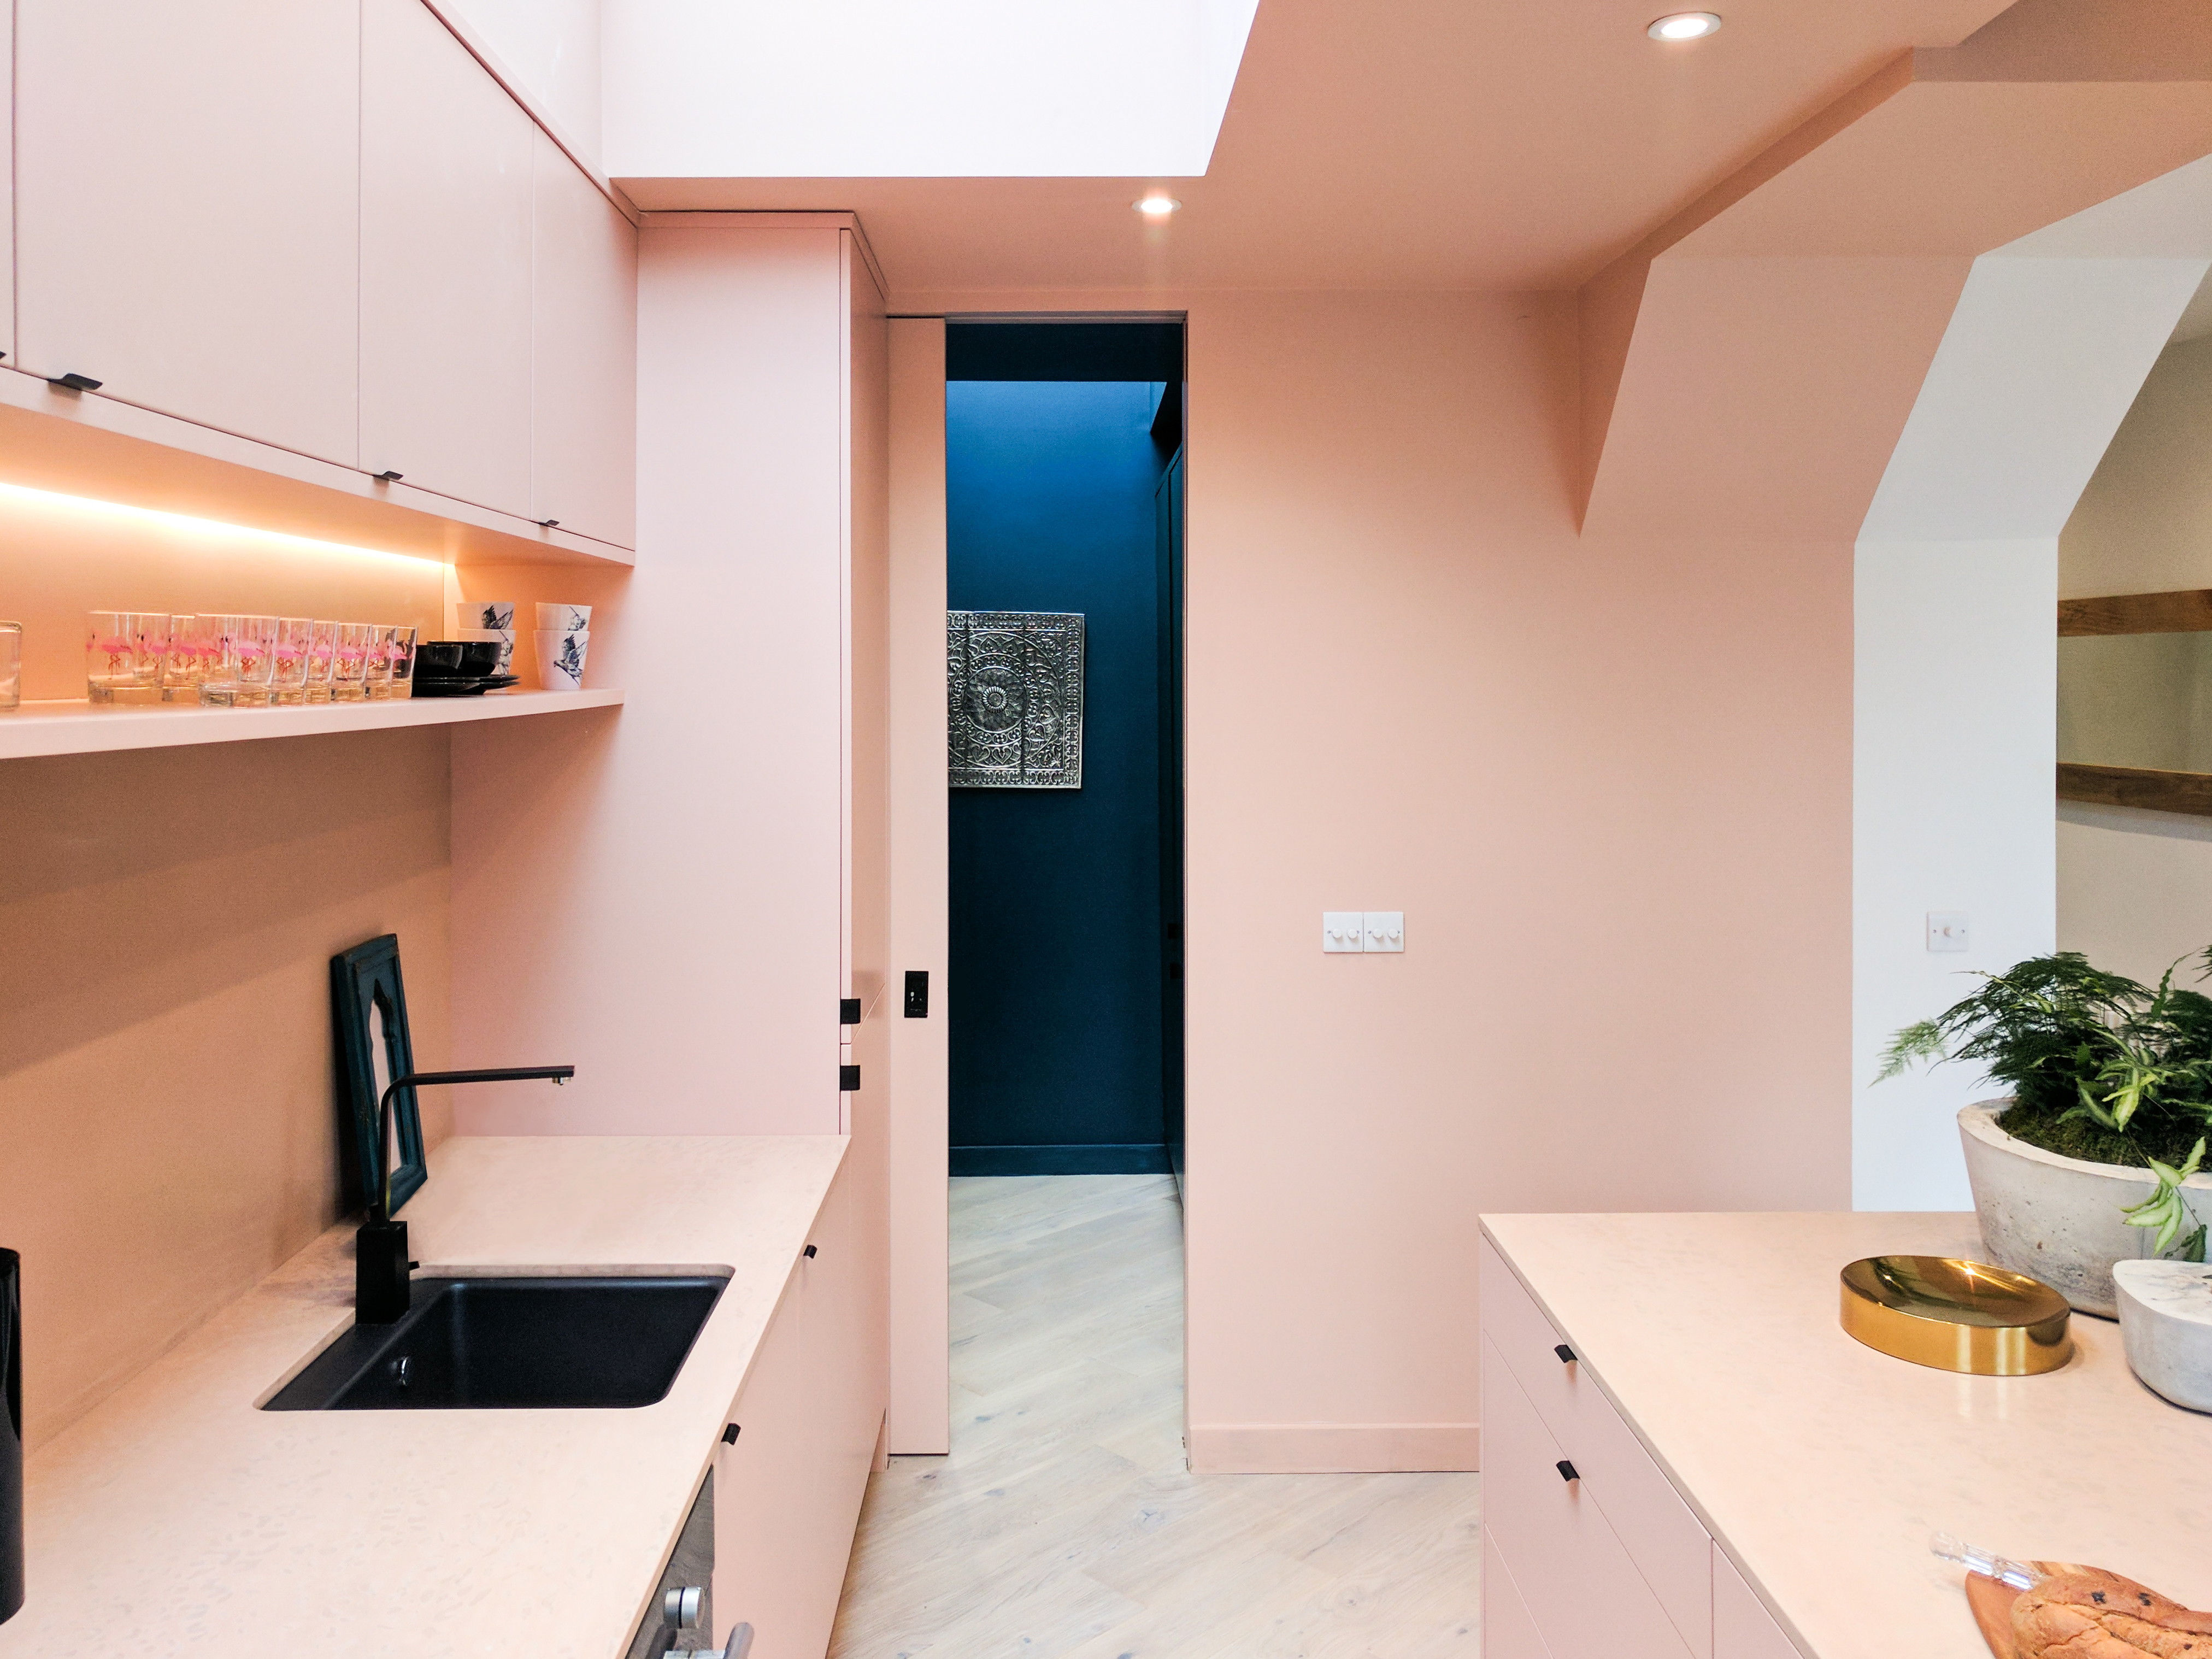 Blush pink kitchen compose beautifully with the black sink and fittings.